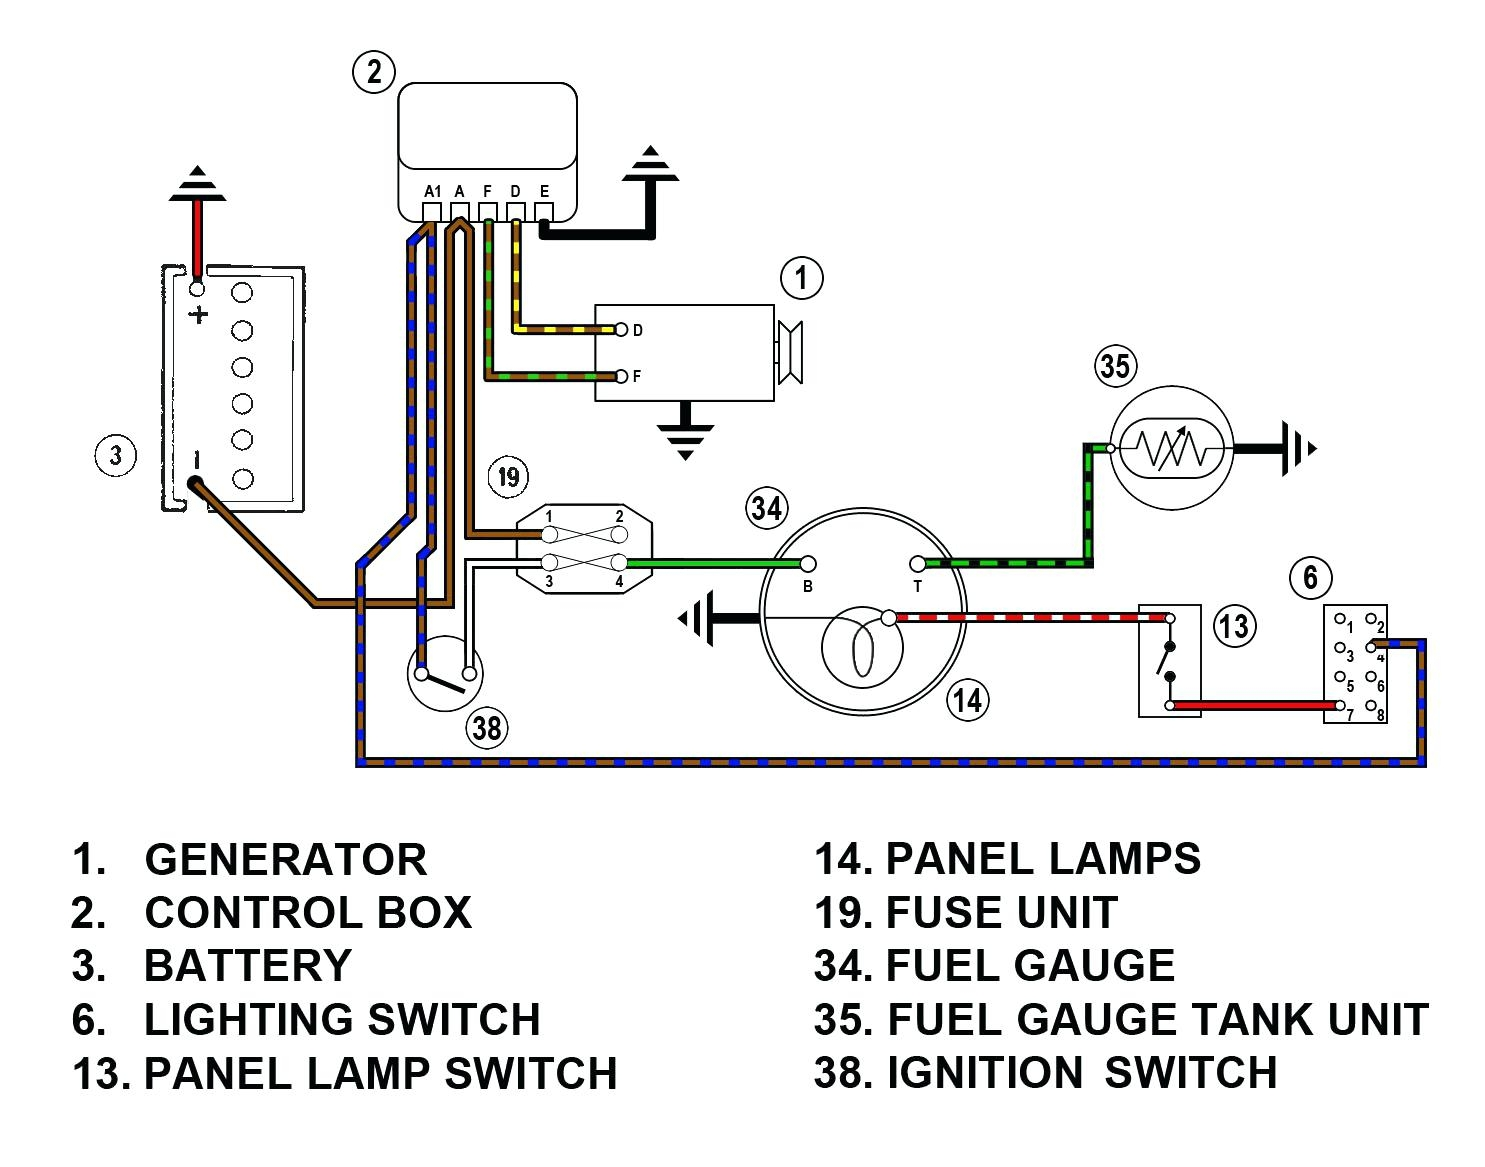 wiring diagram for featherlite gooseneck horse trailer wiring diagram | free wiring diagram wiring diagram for gooseneck trailer